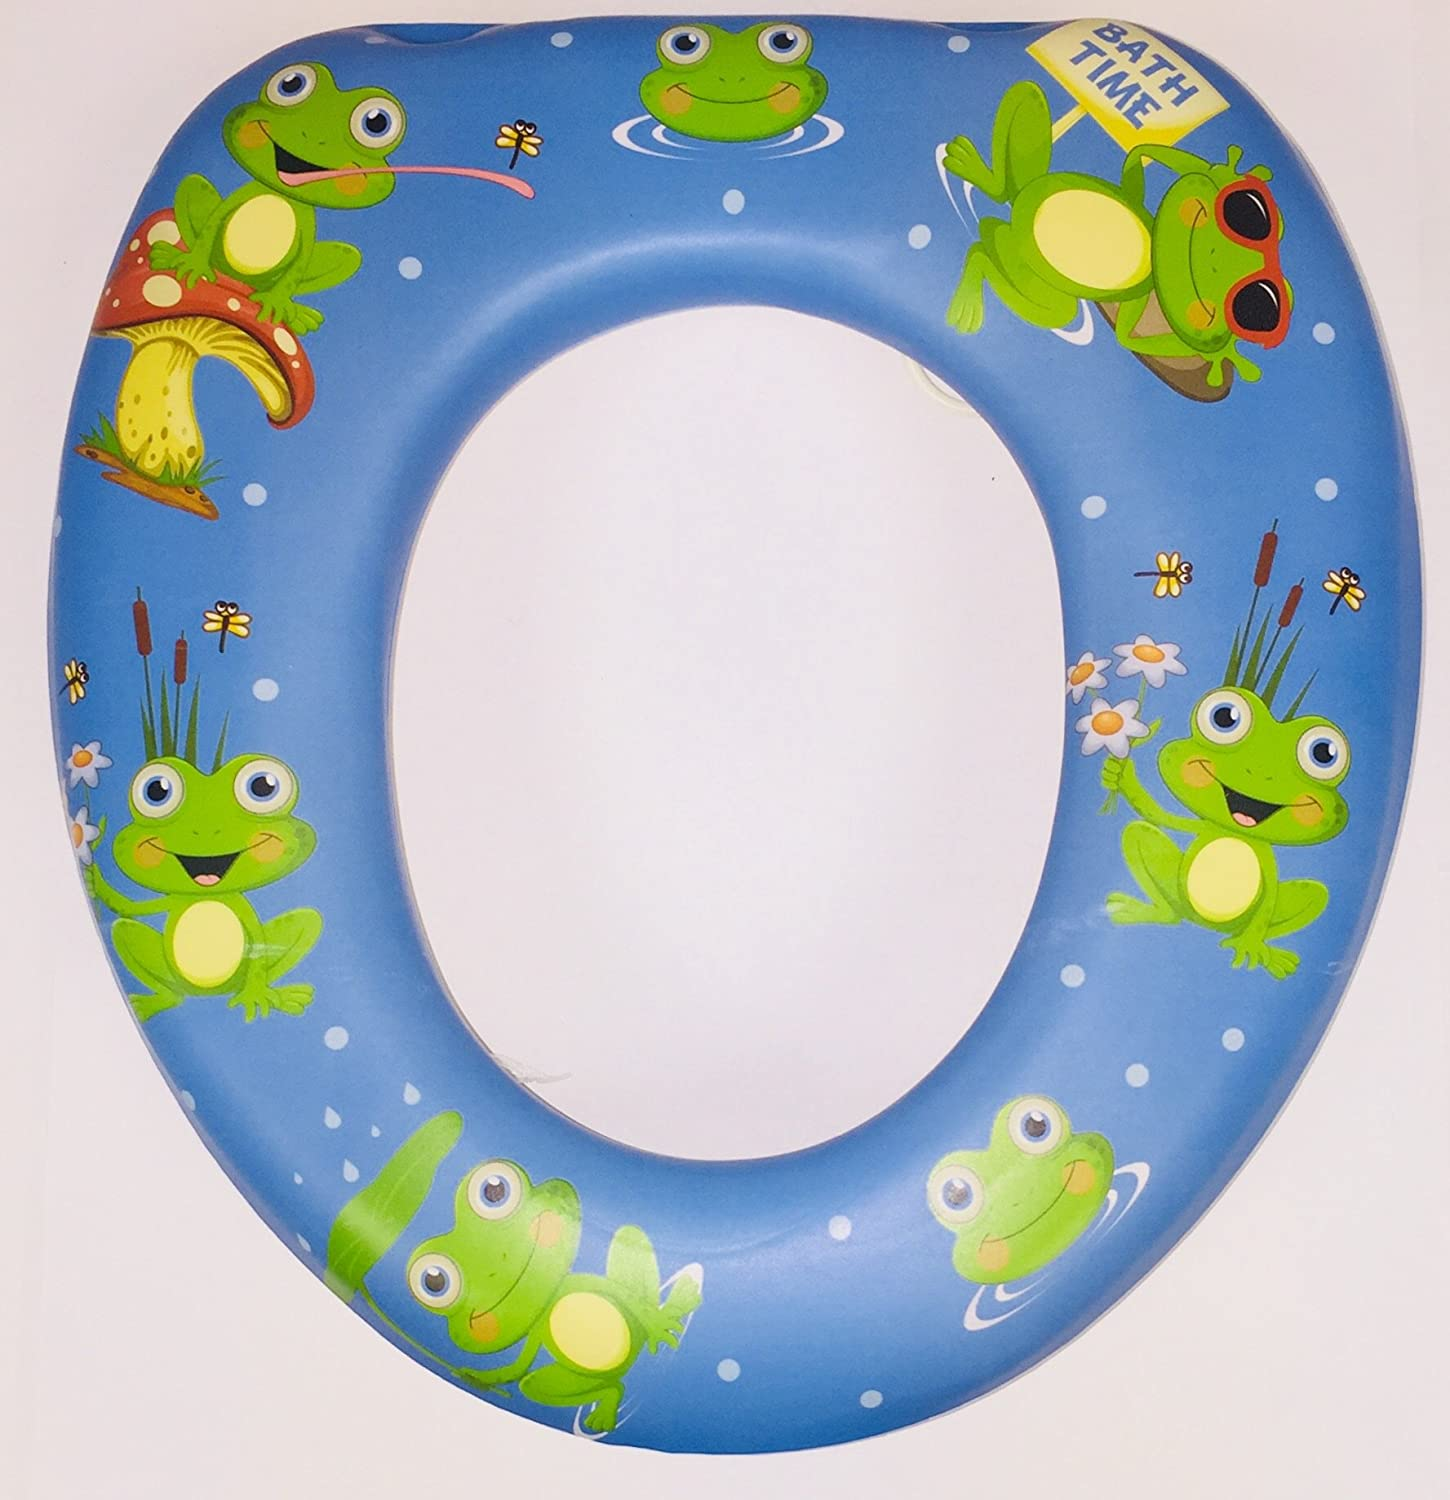 Kids children Soft Padded Potty Toilet Training Seat Baby Toddler Training-Ducks